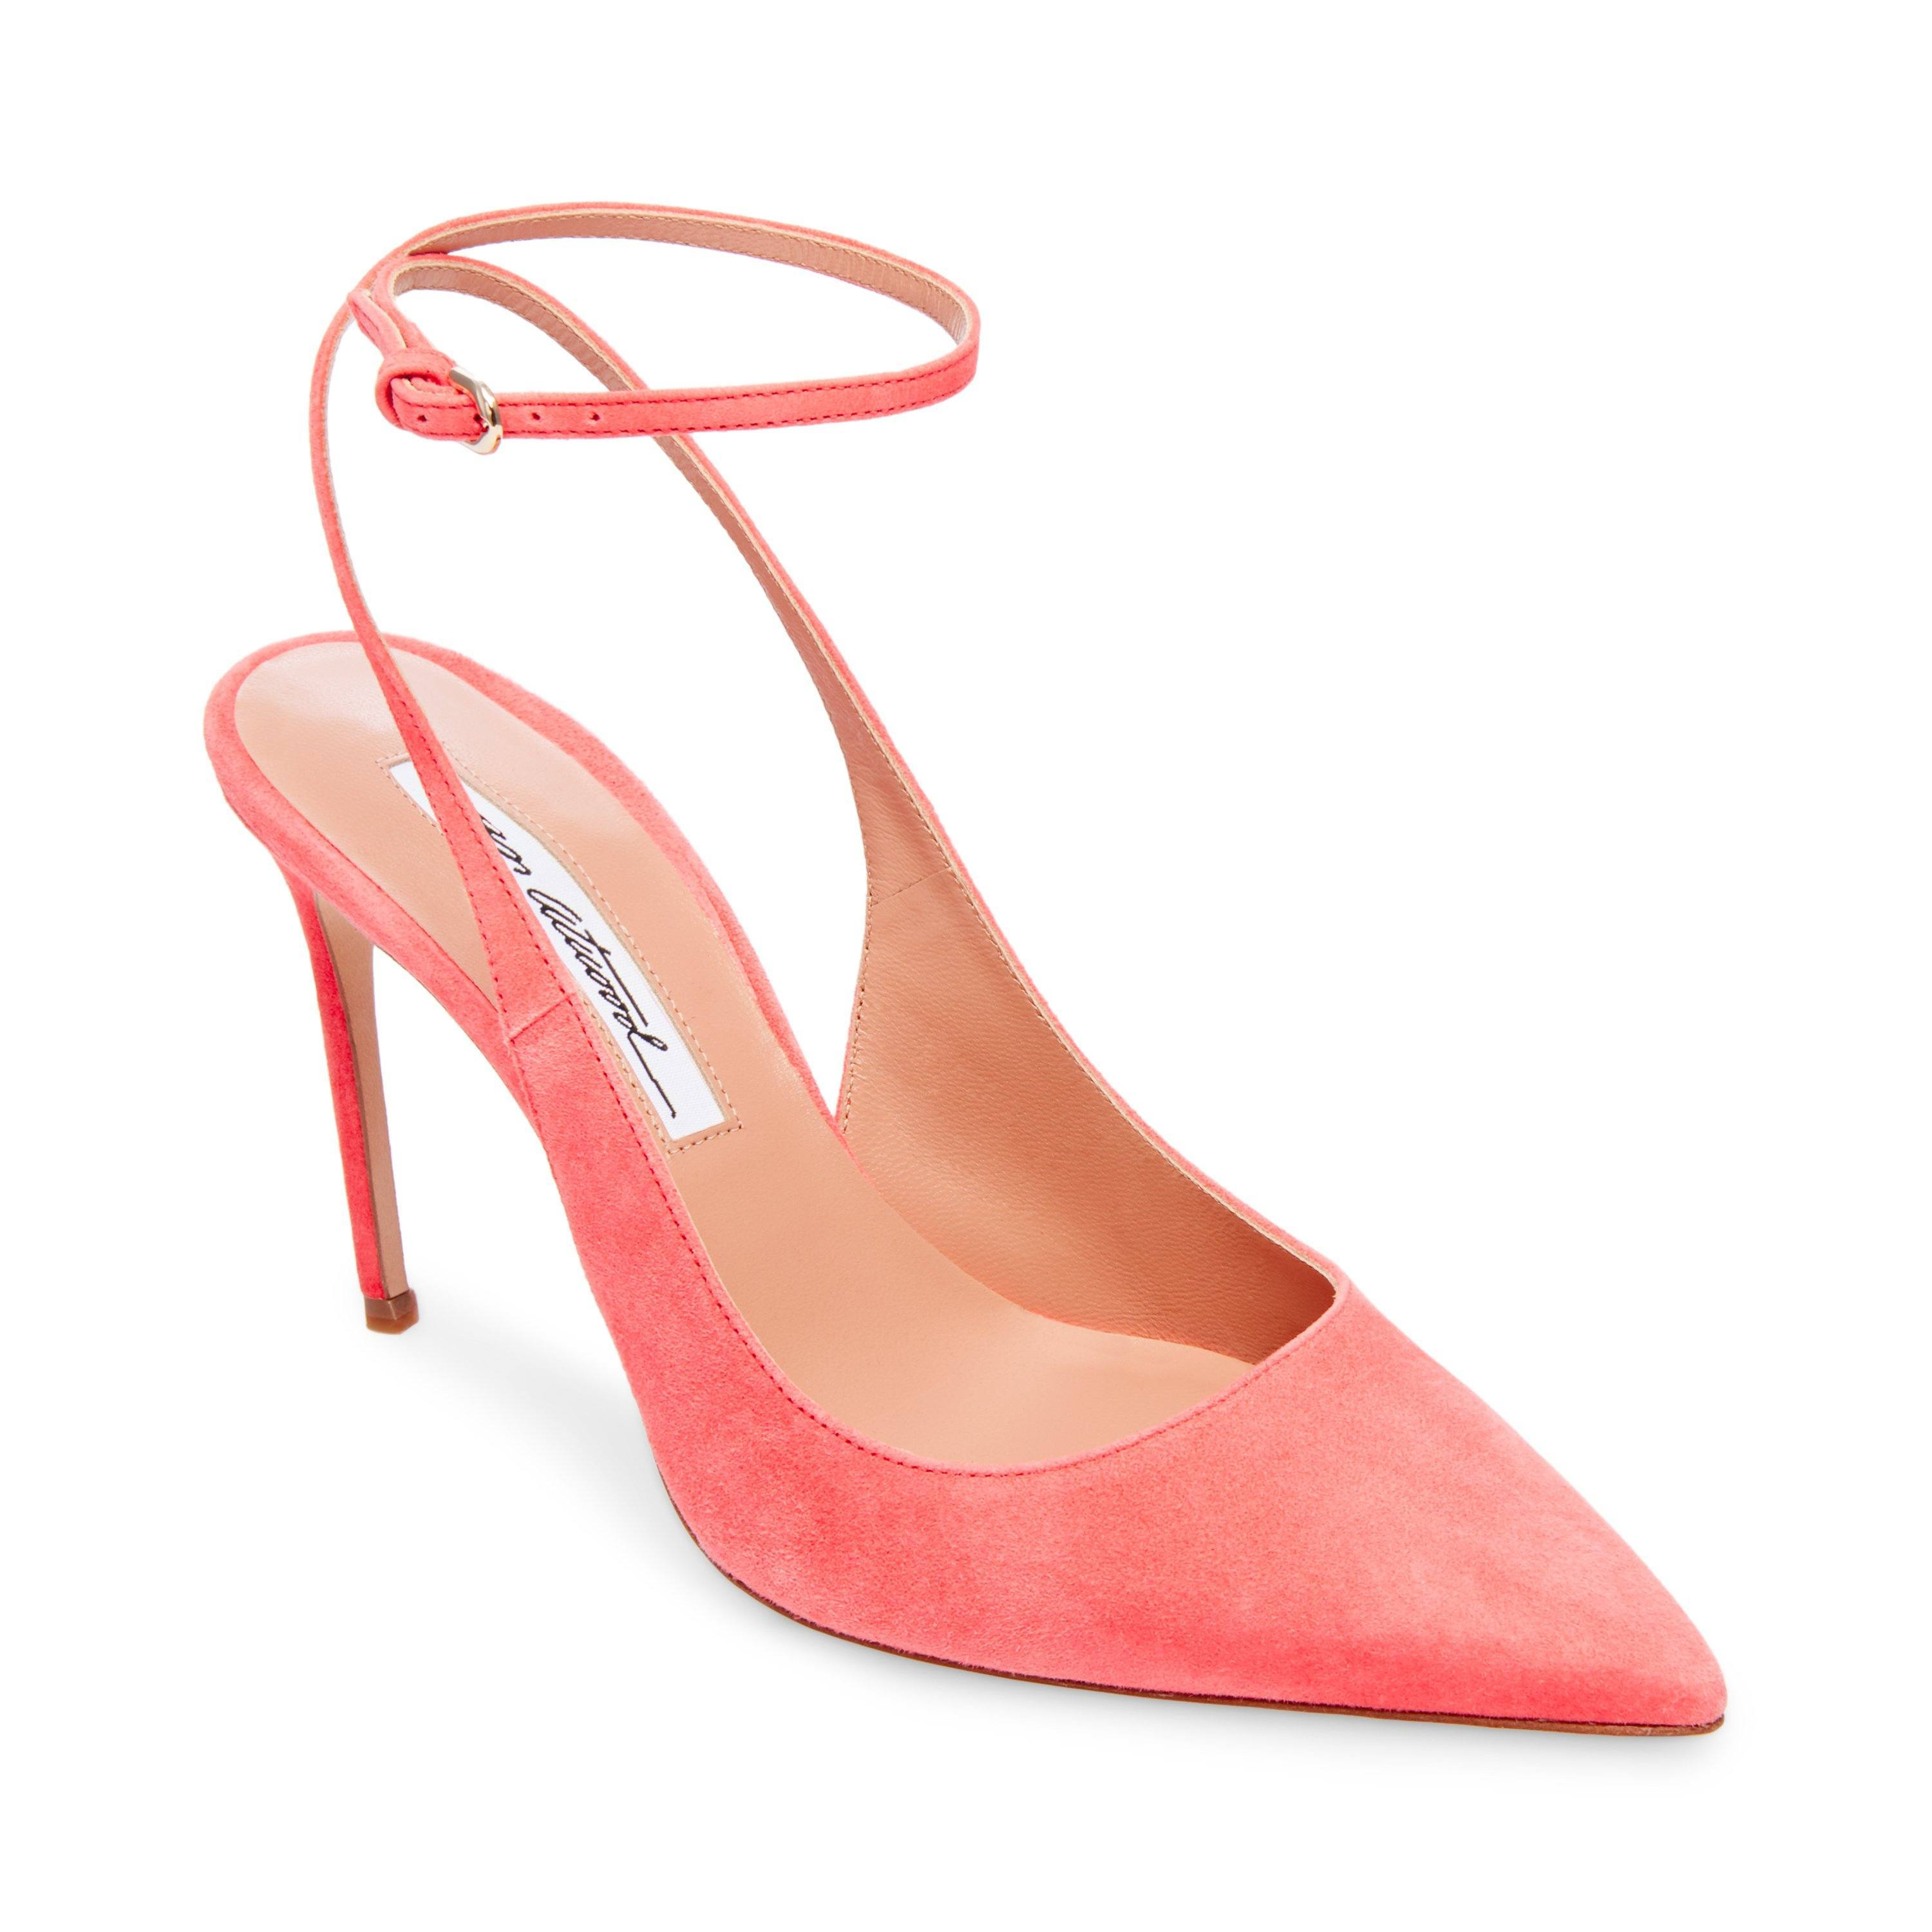 VICKY PUMP – Brian Atwood